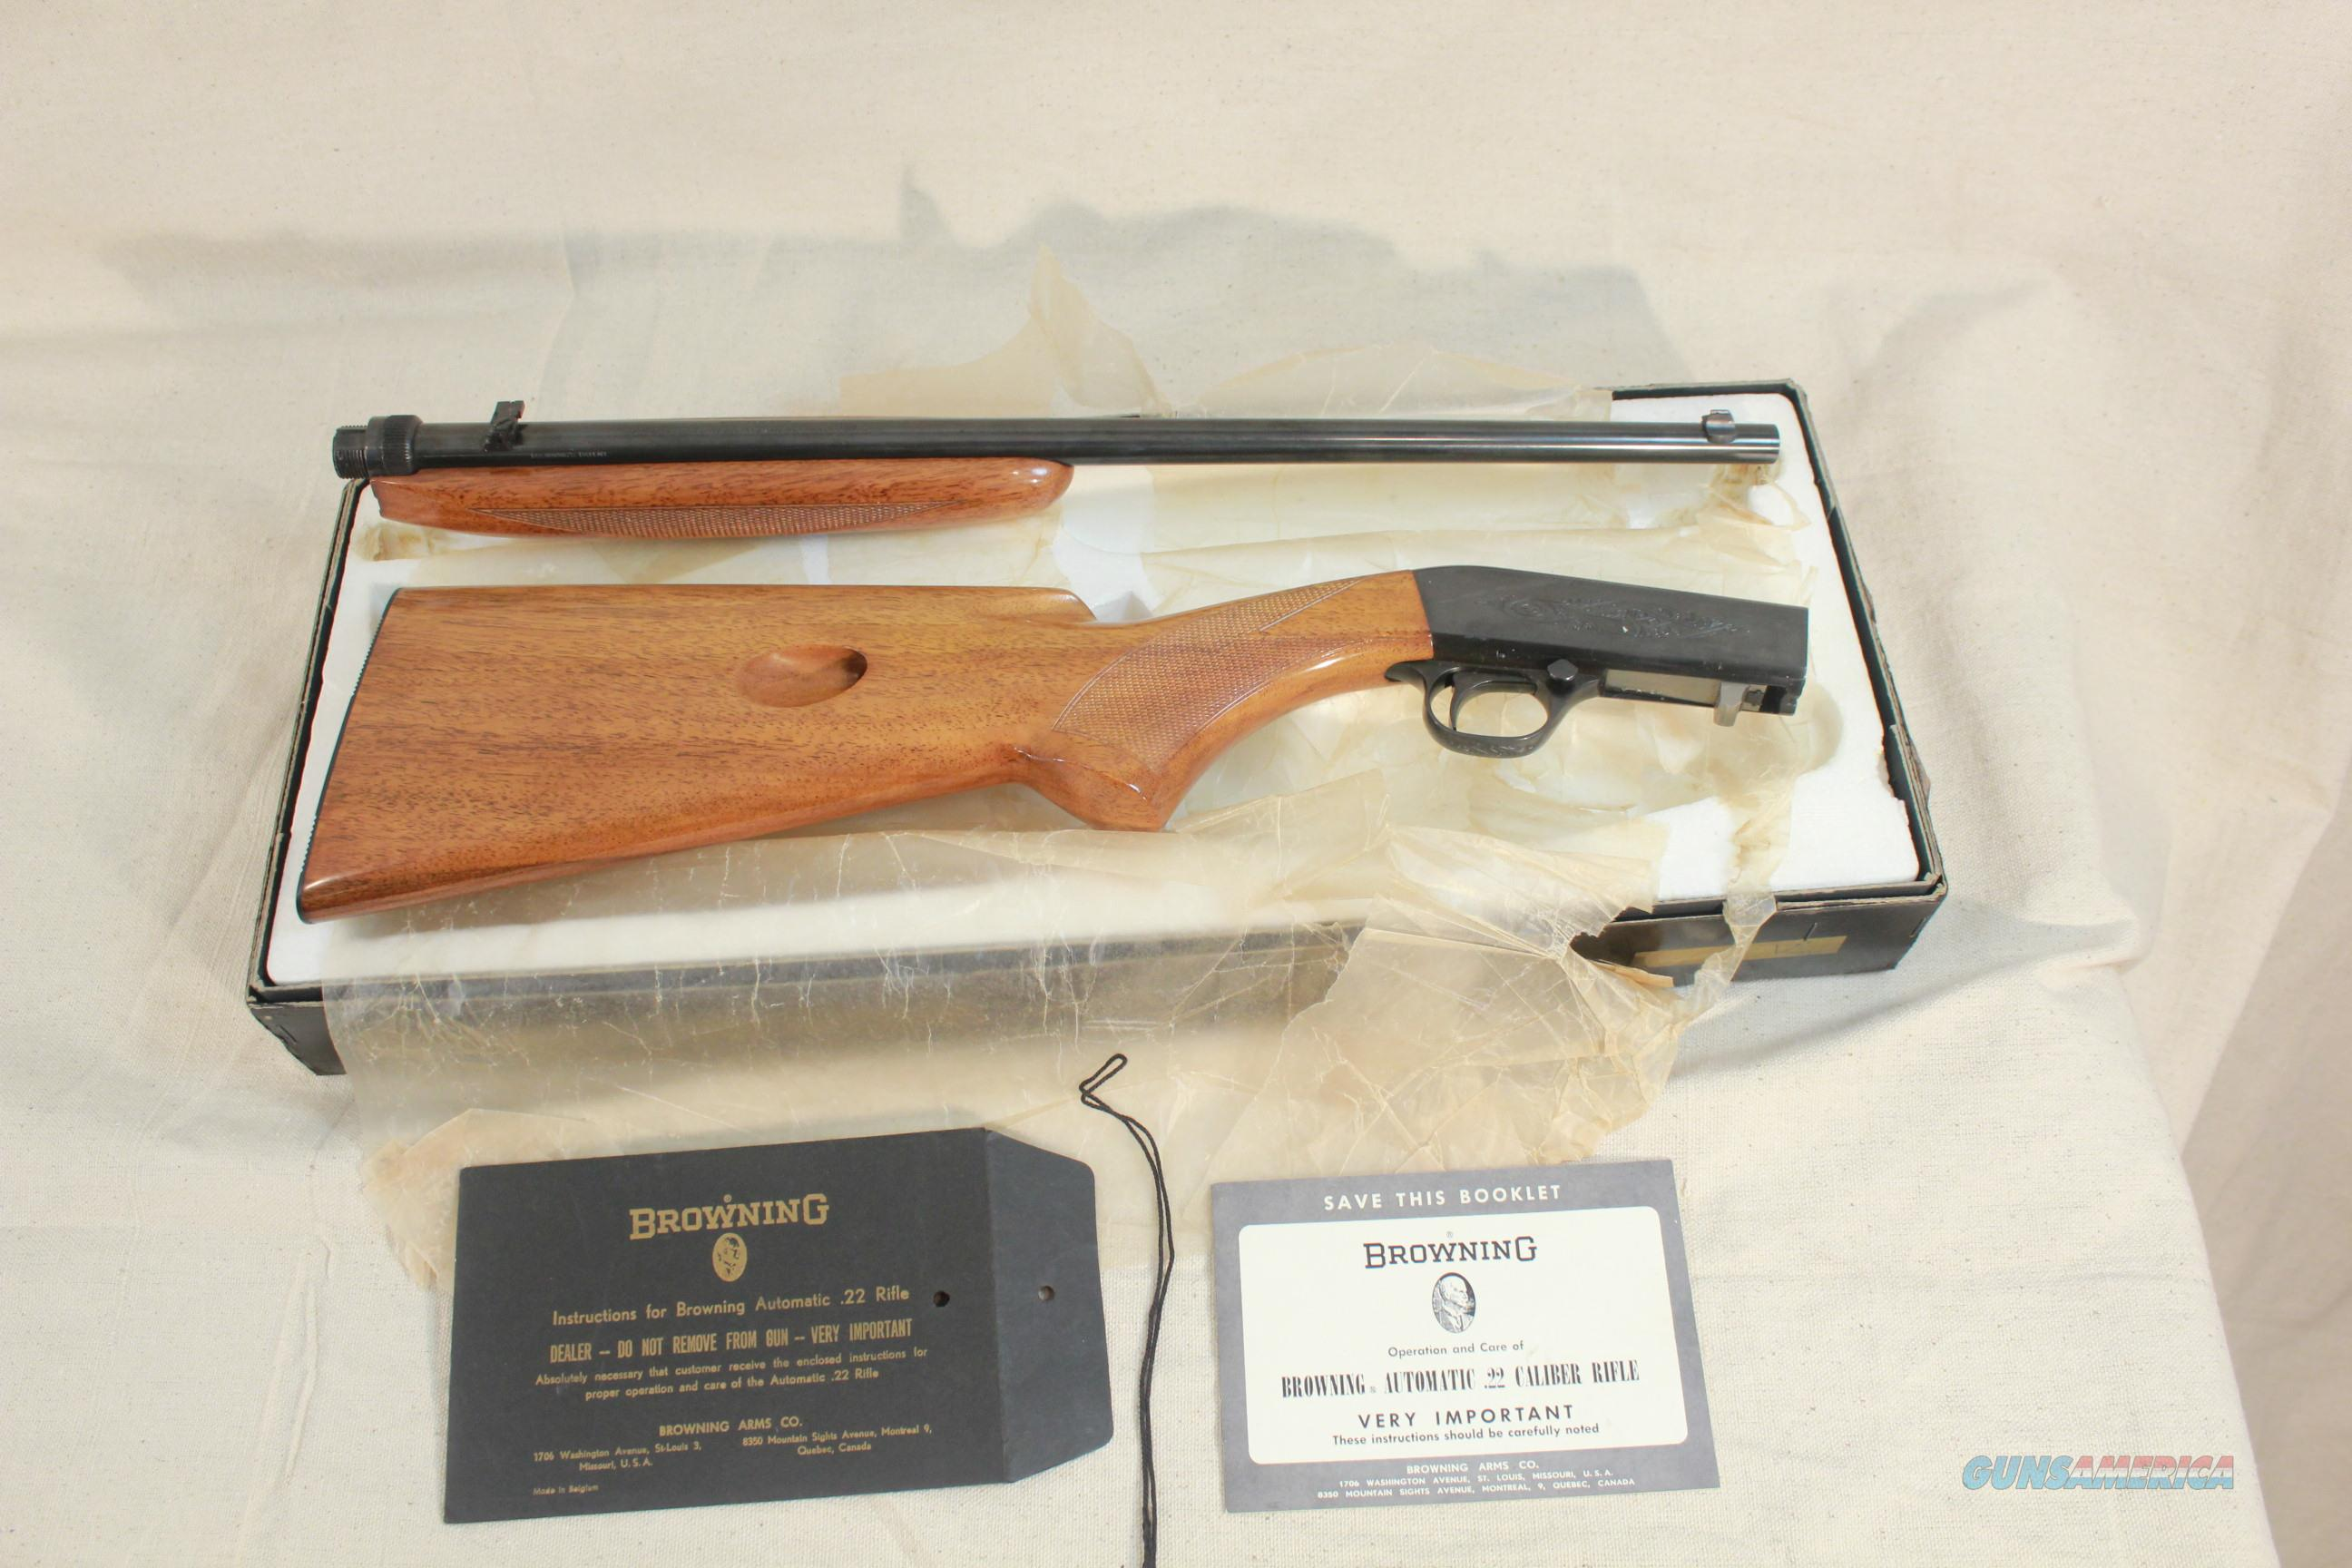 Browning Automatic Takedown .22lr, Mfg. in Belgium in 1965, New and Unfired  Guns > Rifles > Browning Rifles > Semi Auto > Hunting